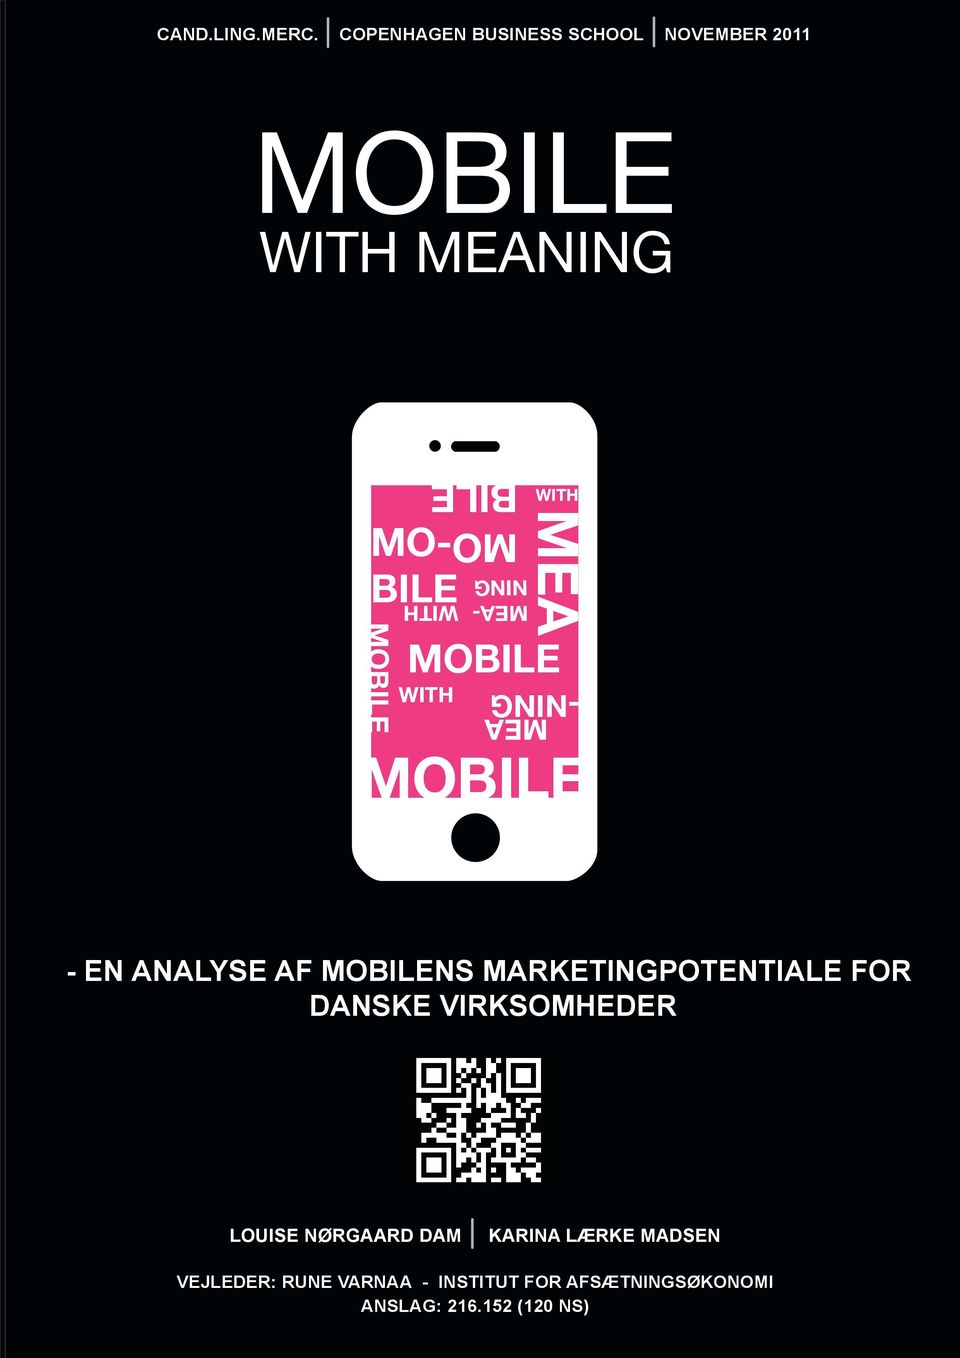 BILE MO- BILE WITH MOBILE MEA MEA -NING MOBILE - EN ANALYSE AF MOBILENS